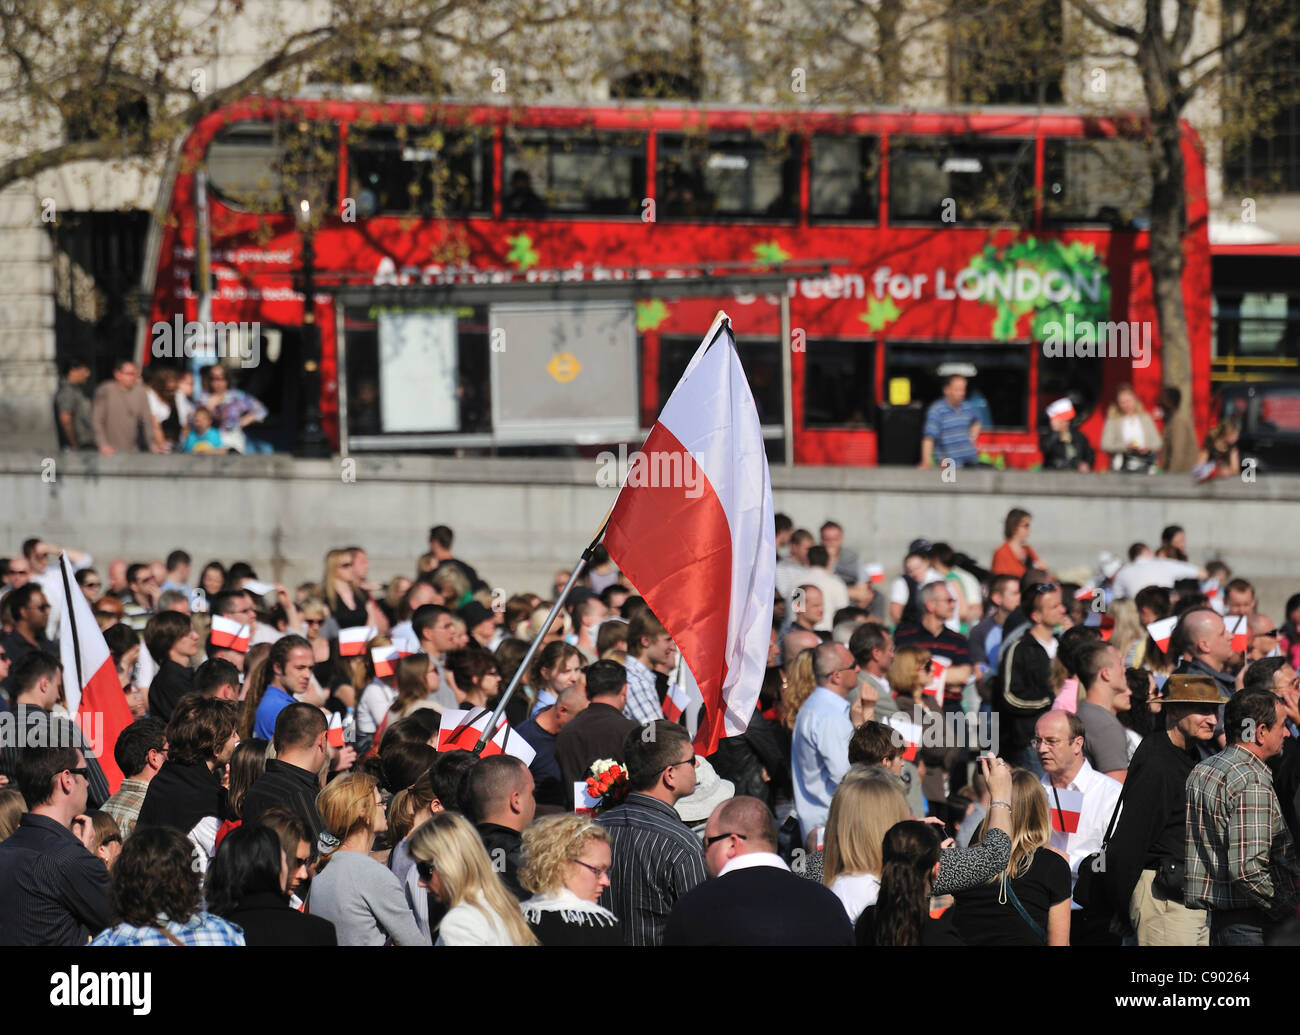 People gathered to watch the funeral of Polish President Lech Kaczynski on TV screens, April 2010, Trafalgar Square, - Stock Image